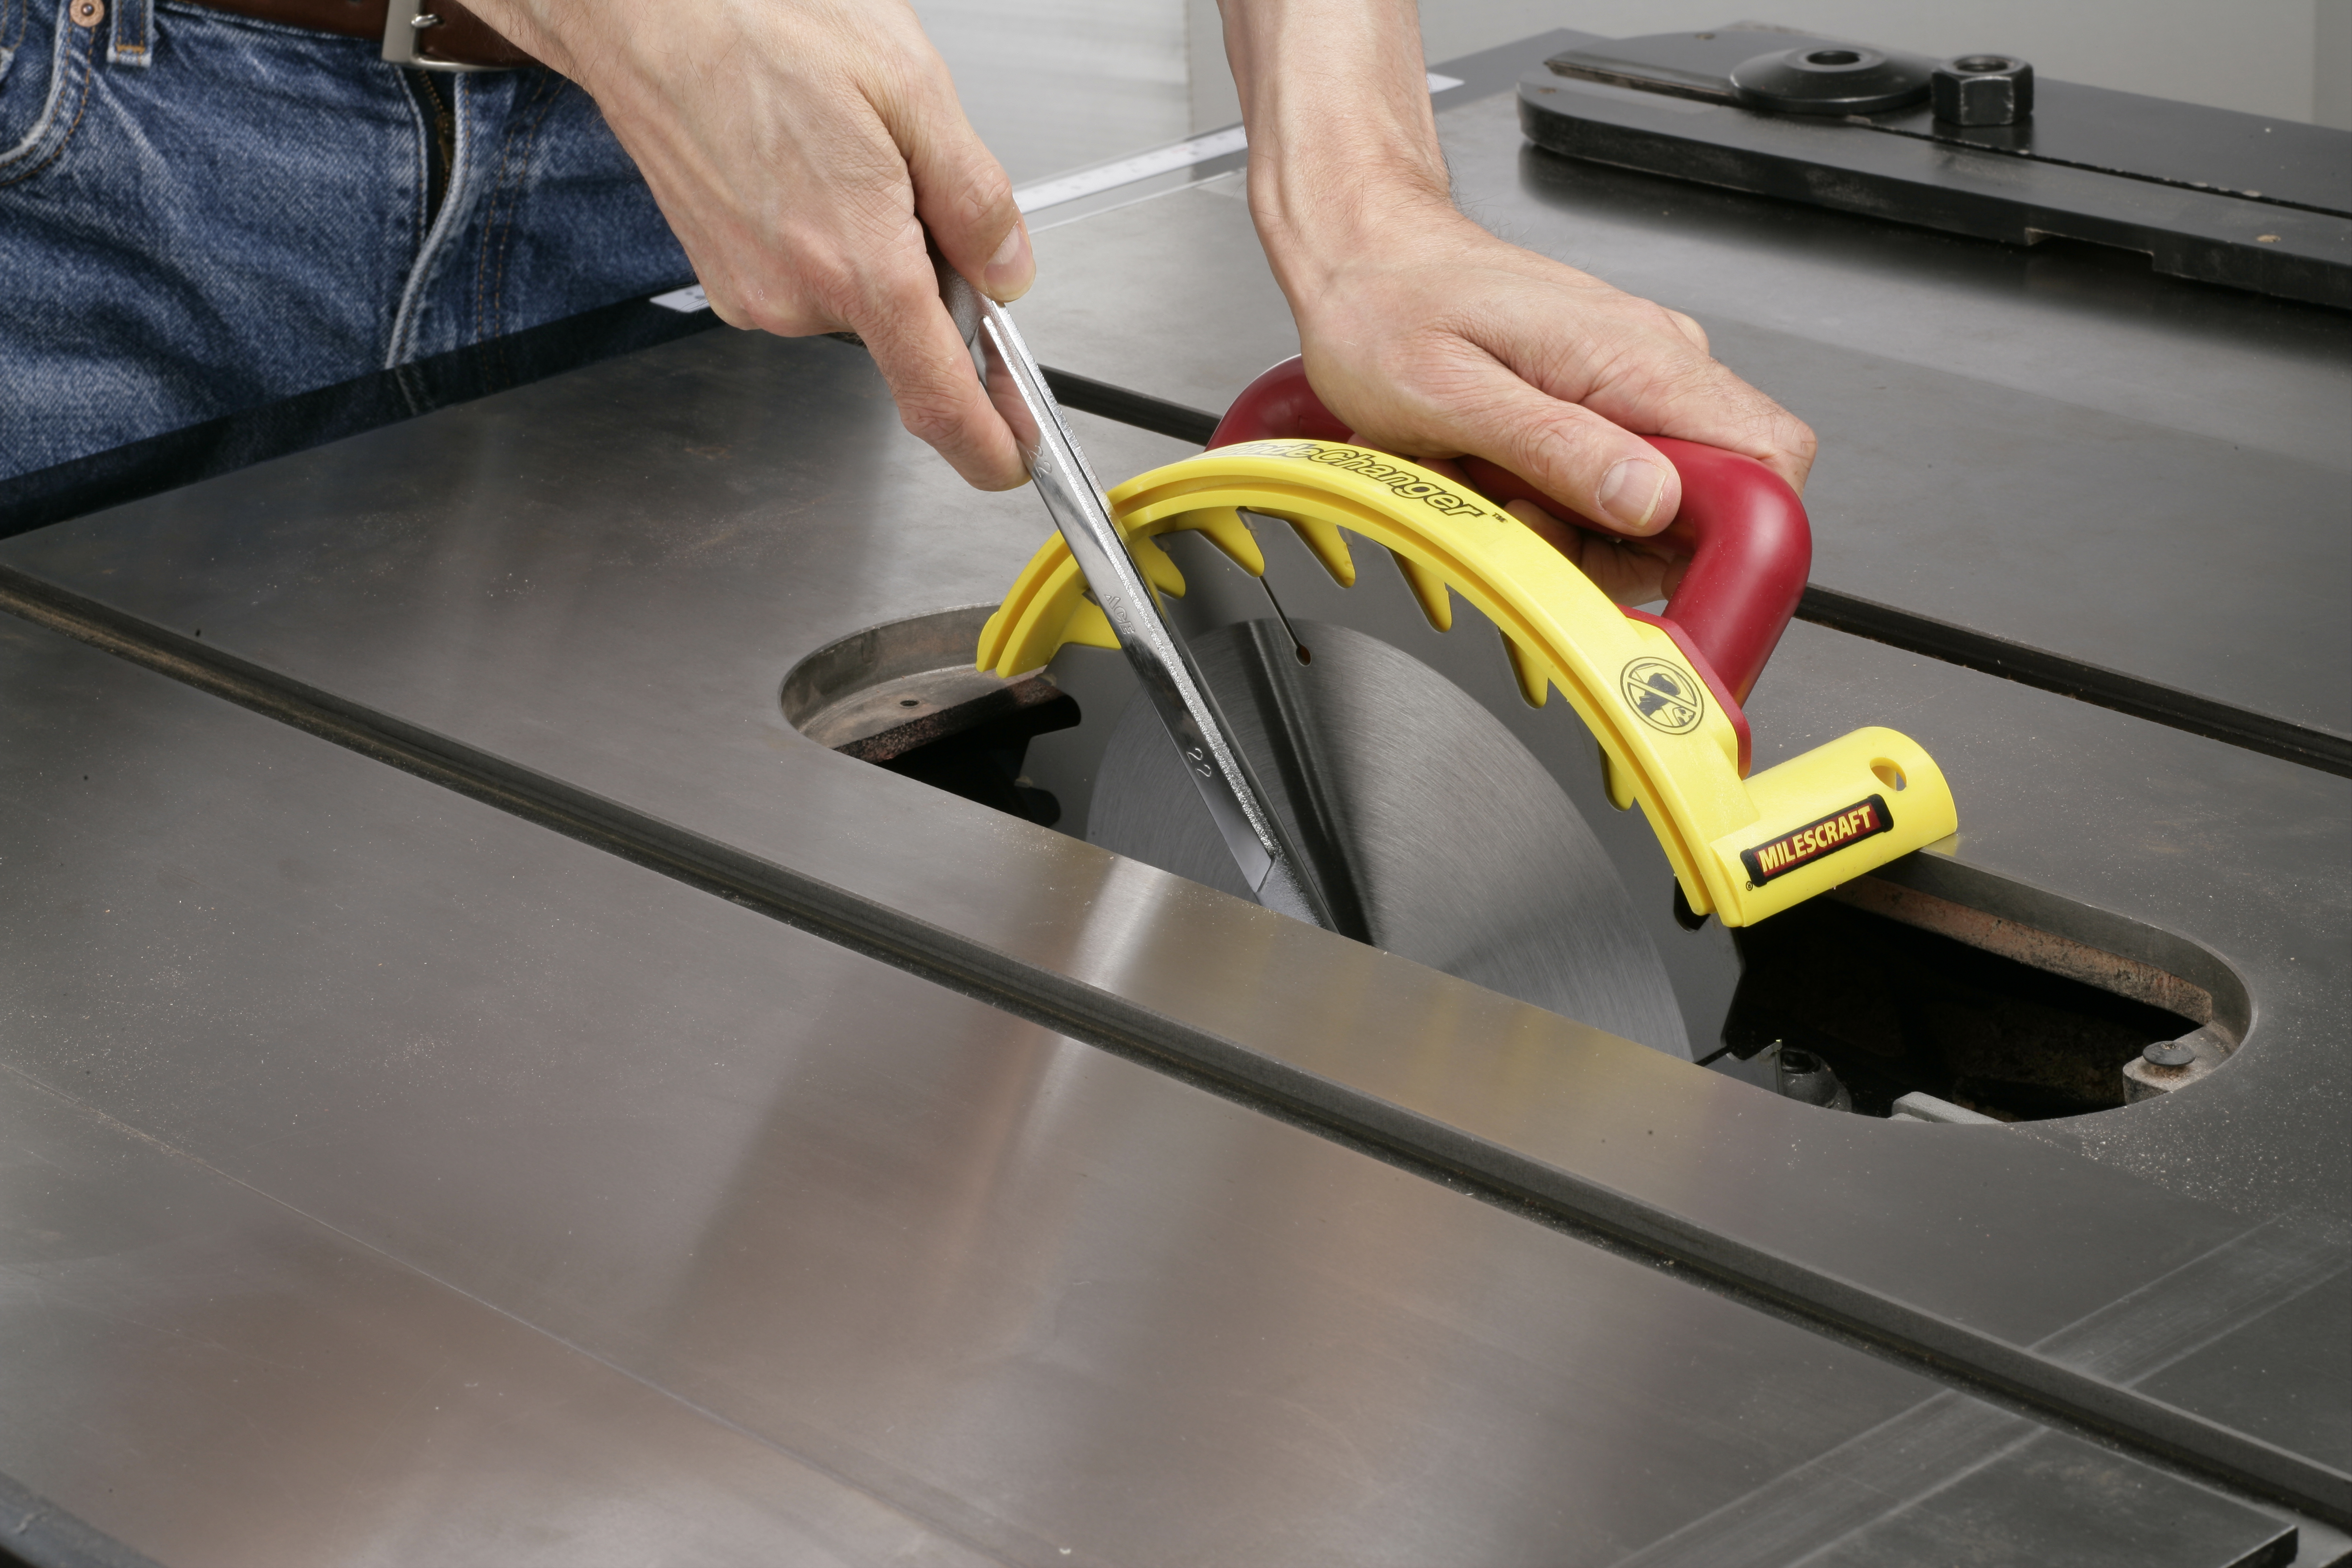 Bladechanger milescraft makes blade changing easier and safer greentooth Choice Image